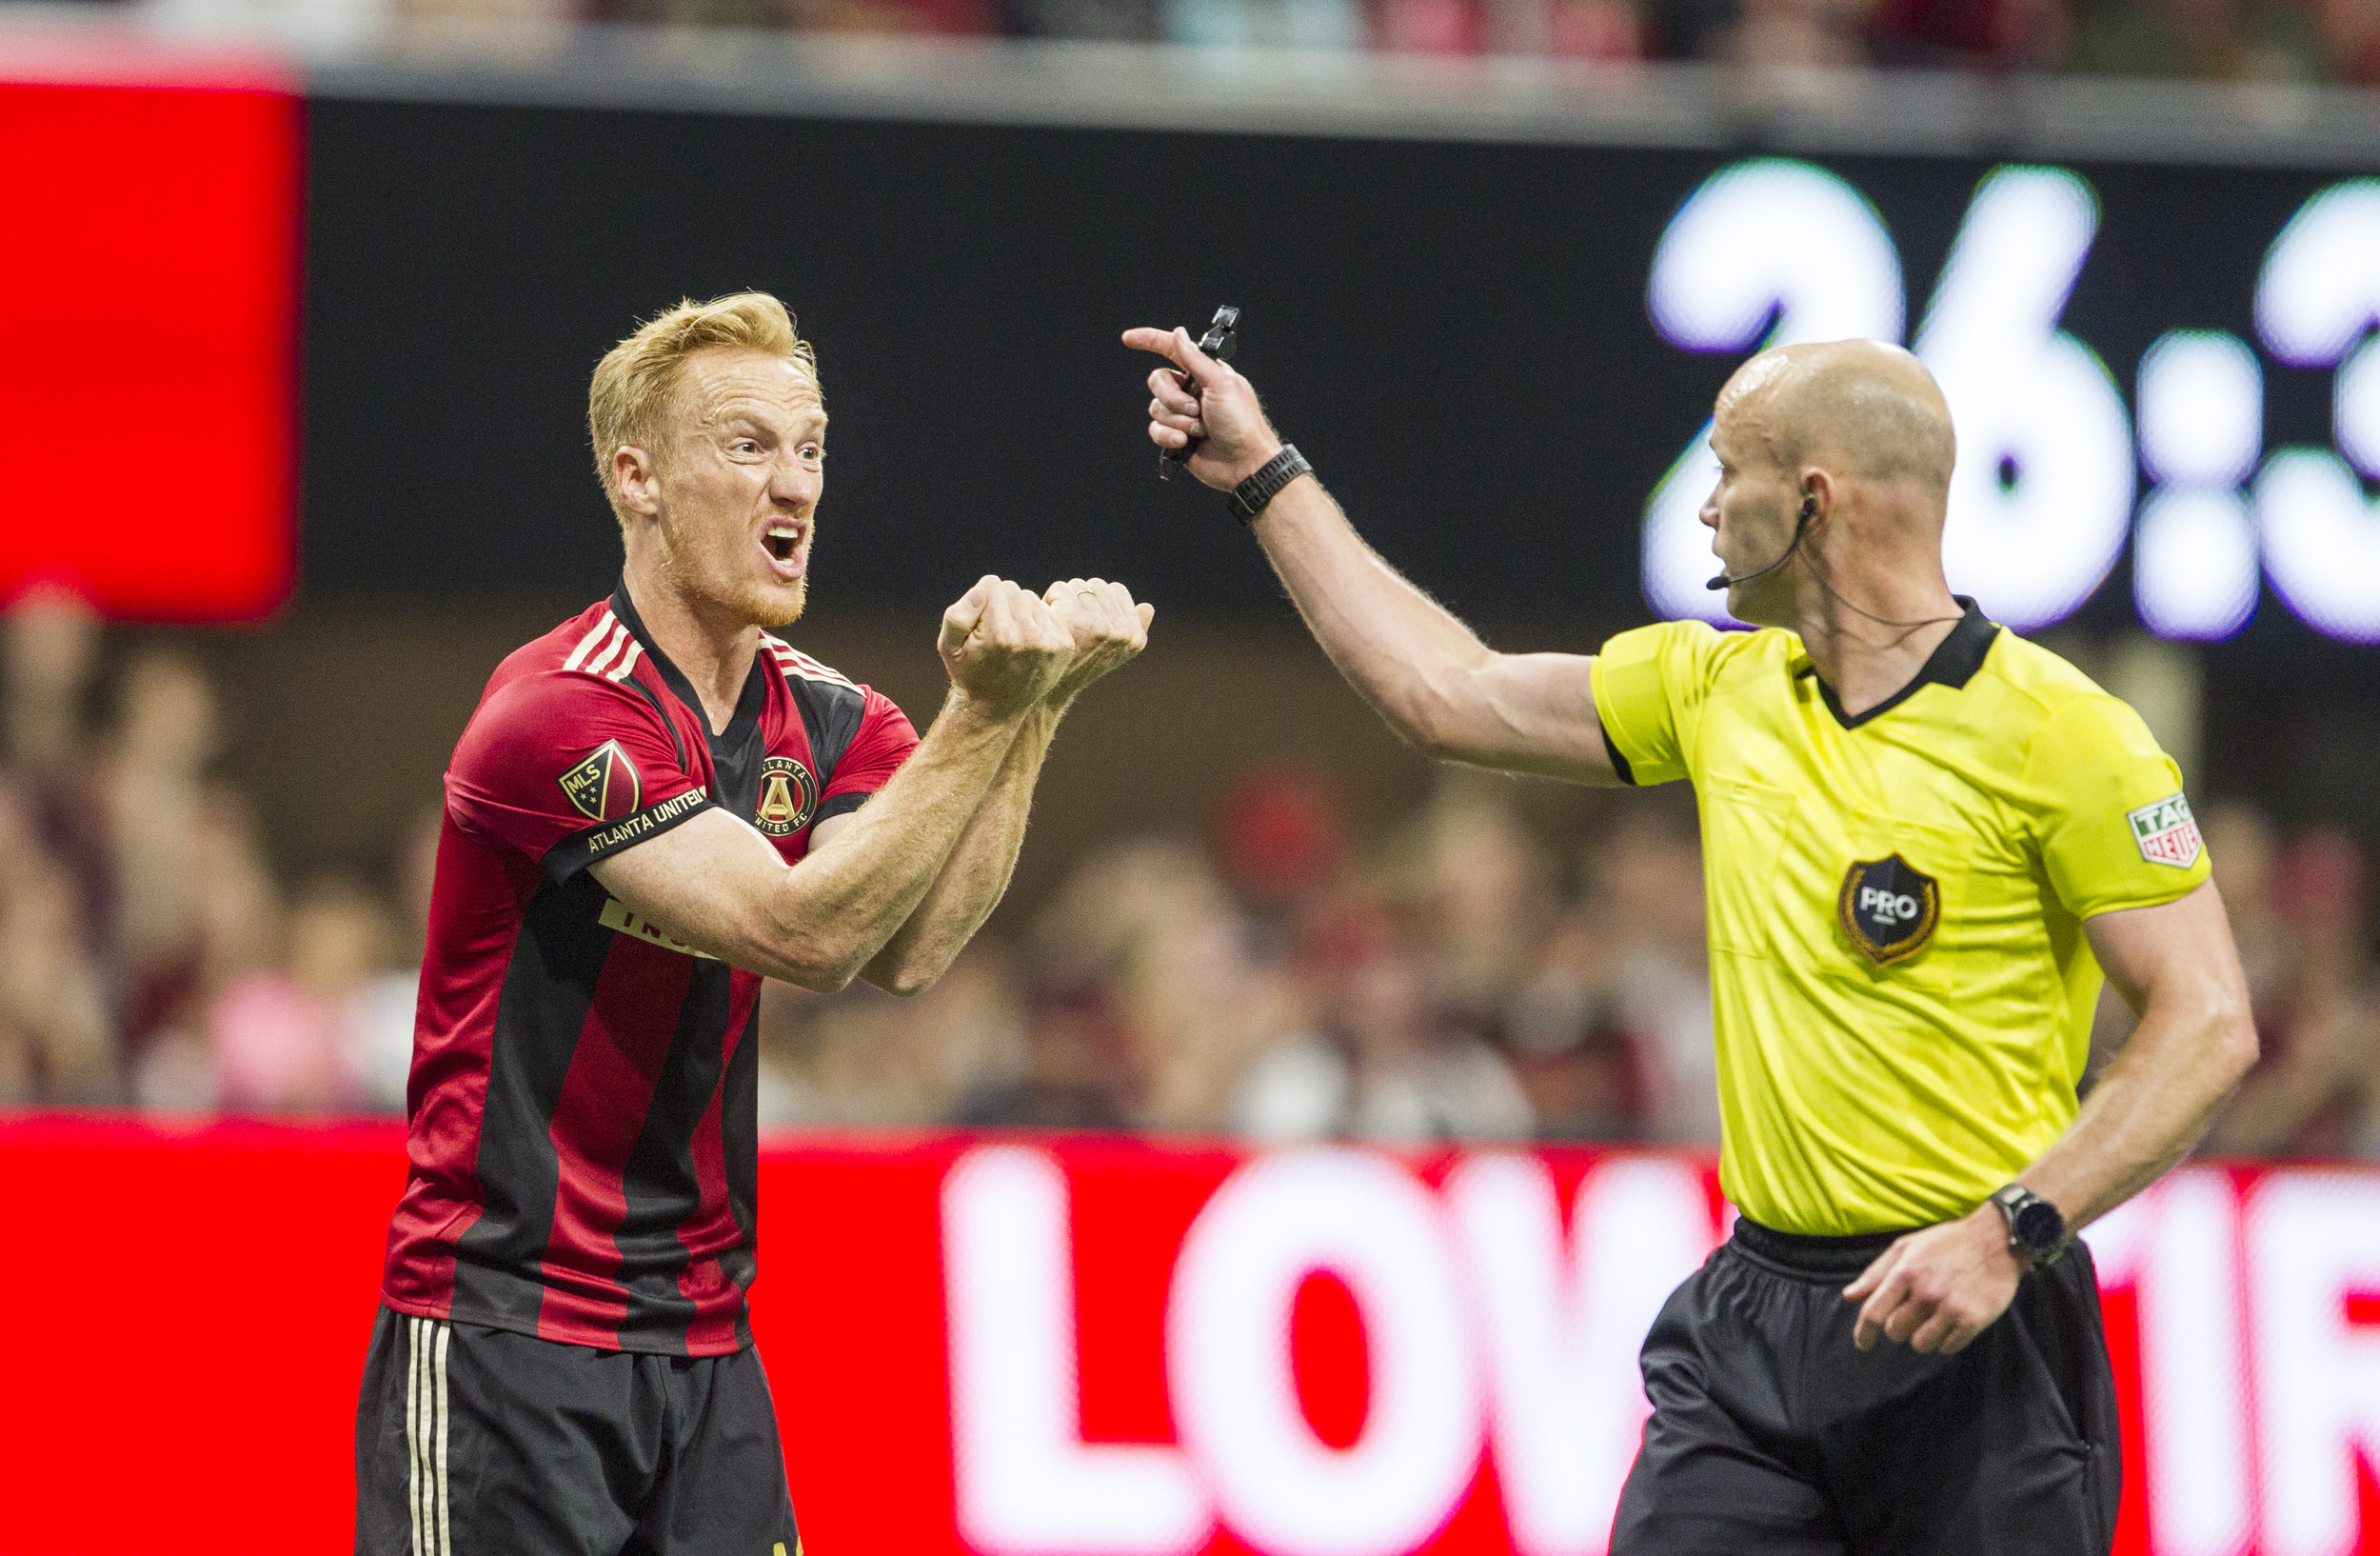 Atlanta United midfielder Jeff Larentowicz (18) reacts to a call from the referee during the match between NYC FC and Atlanta United at Mercedes-Benz Stadium in Atlanta, Georgia, on Sunday, April 15, 2018.